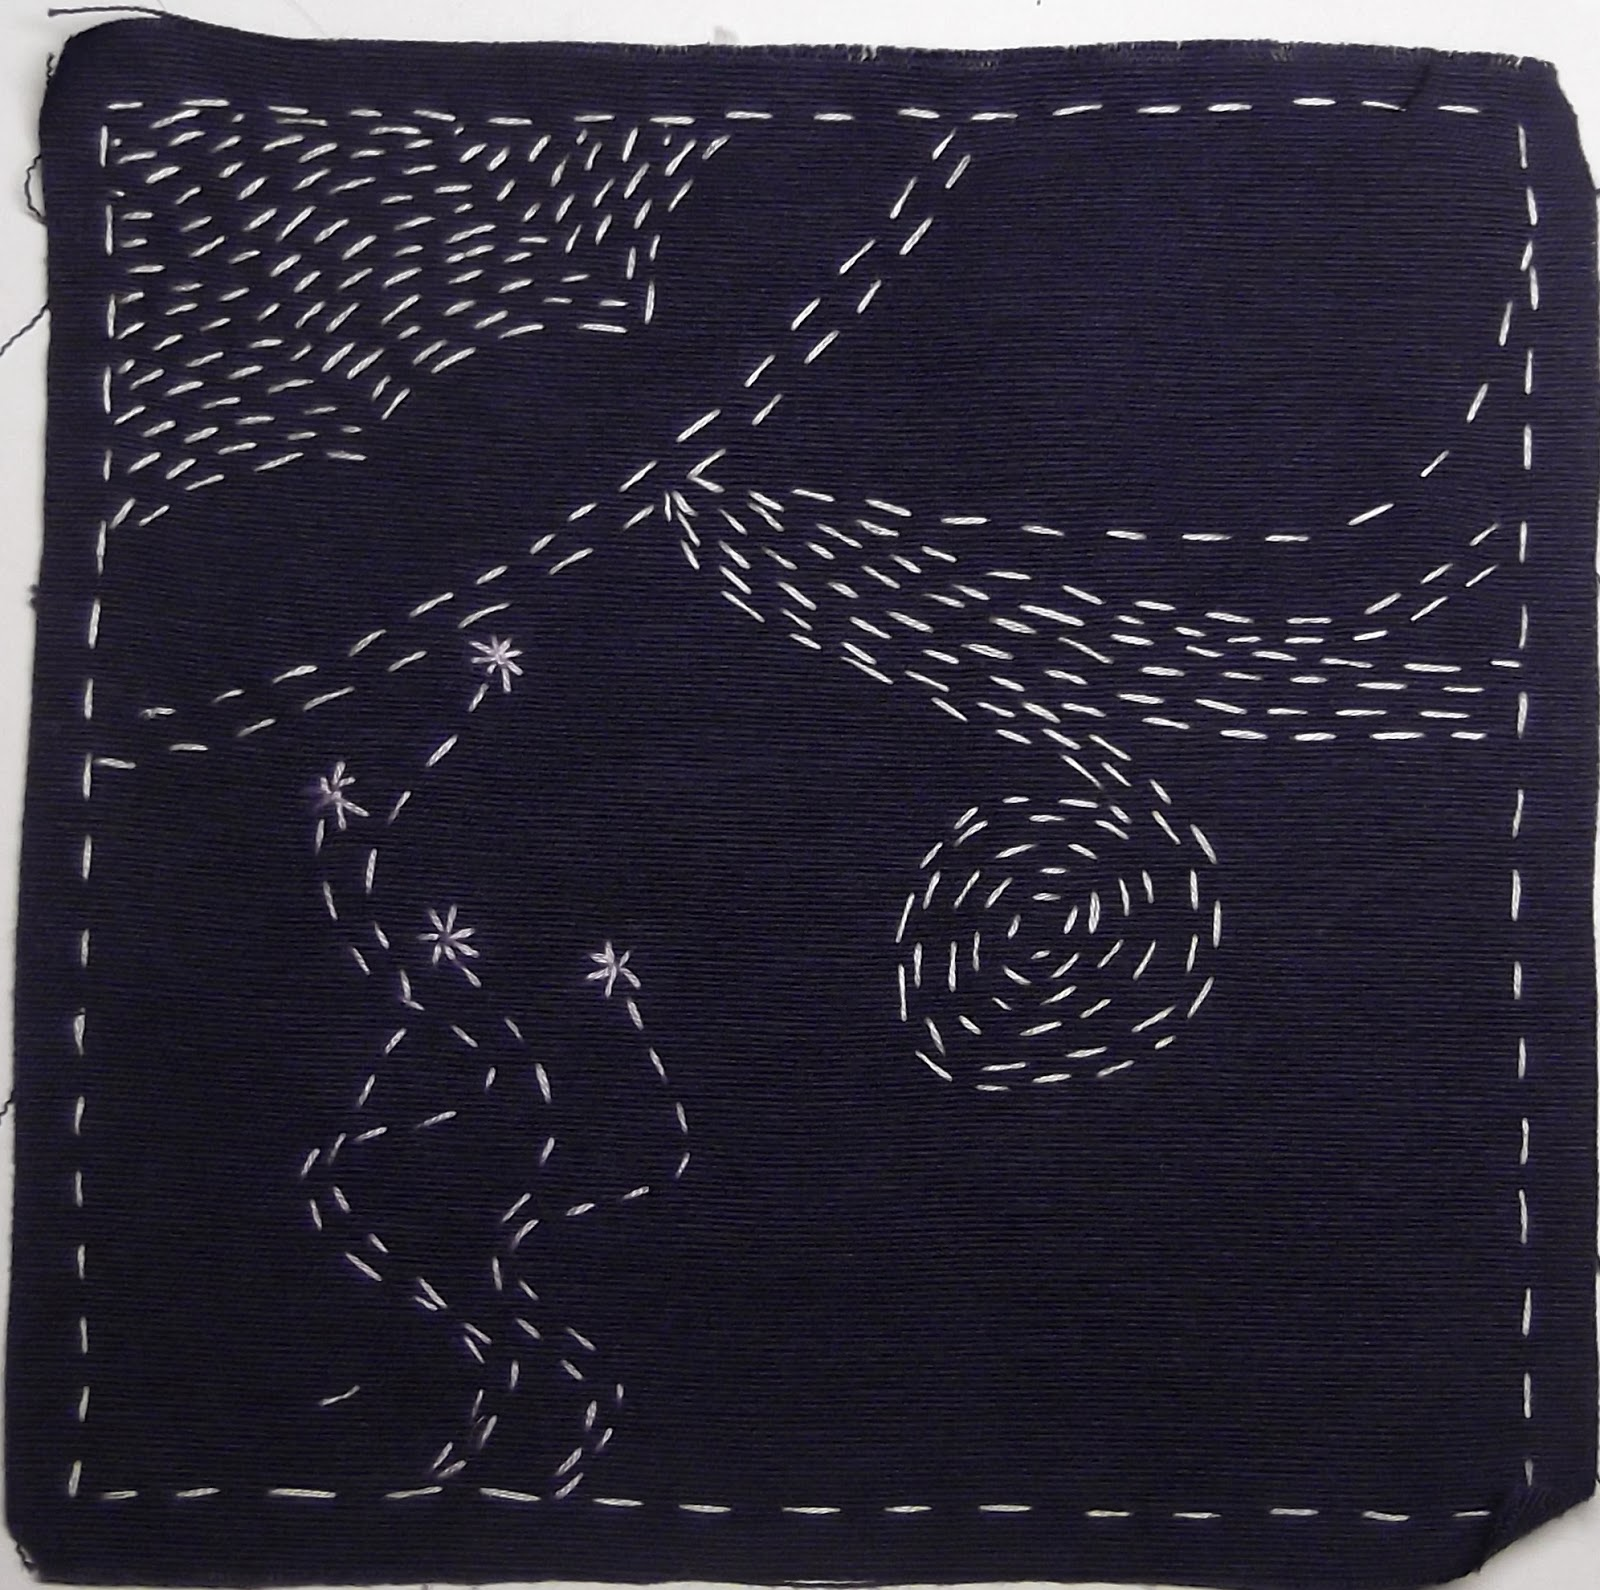 shashiko, running stitch, doodling in embroidery